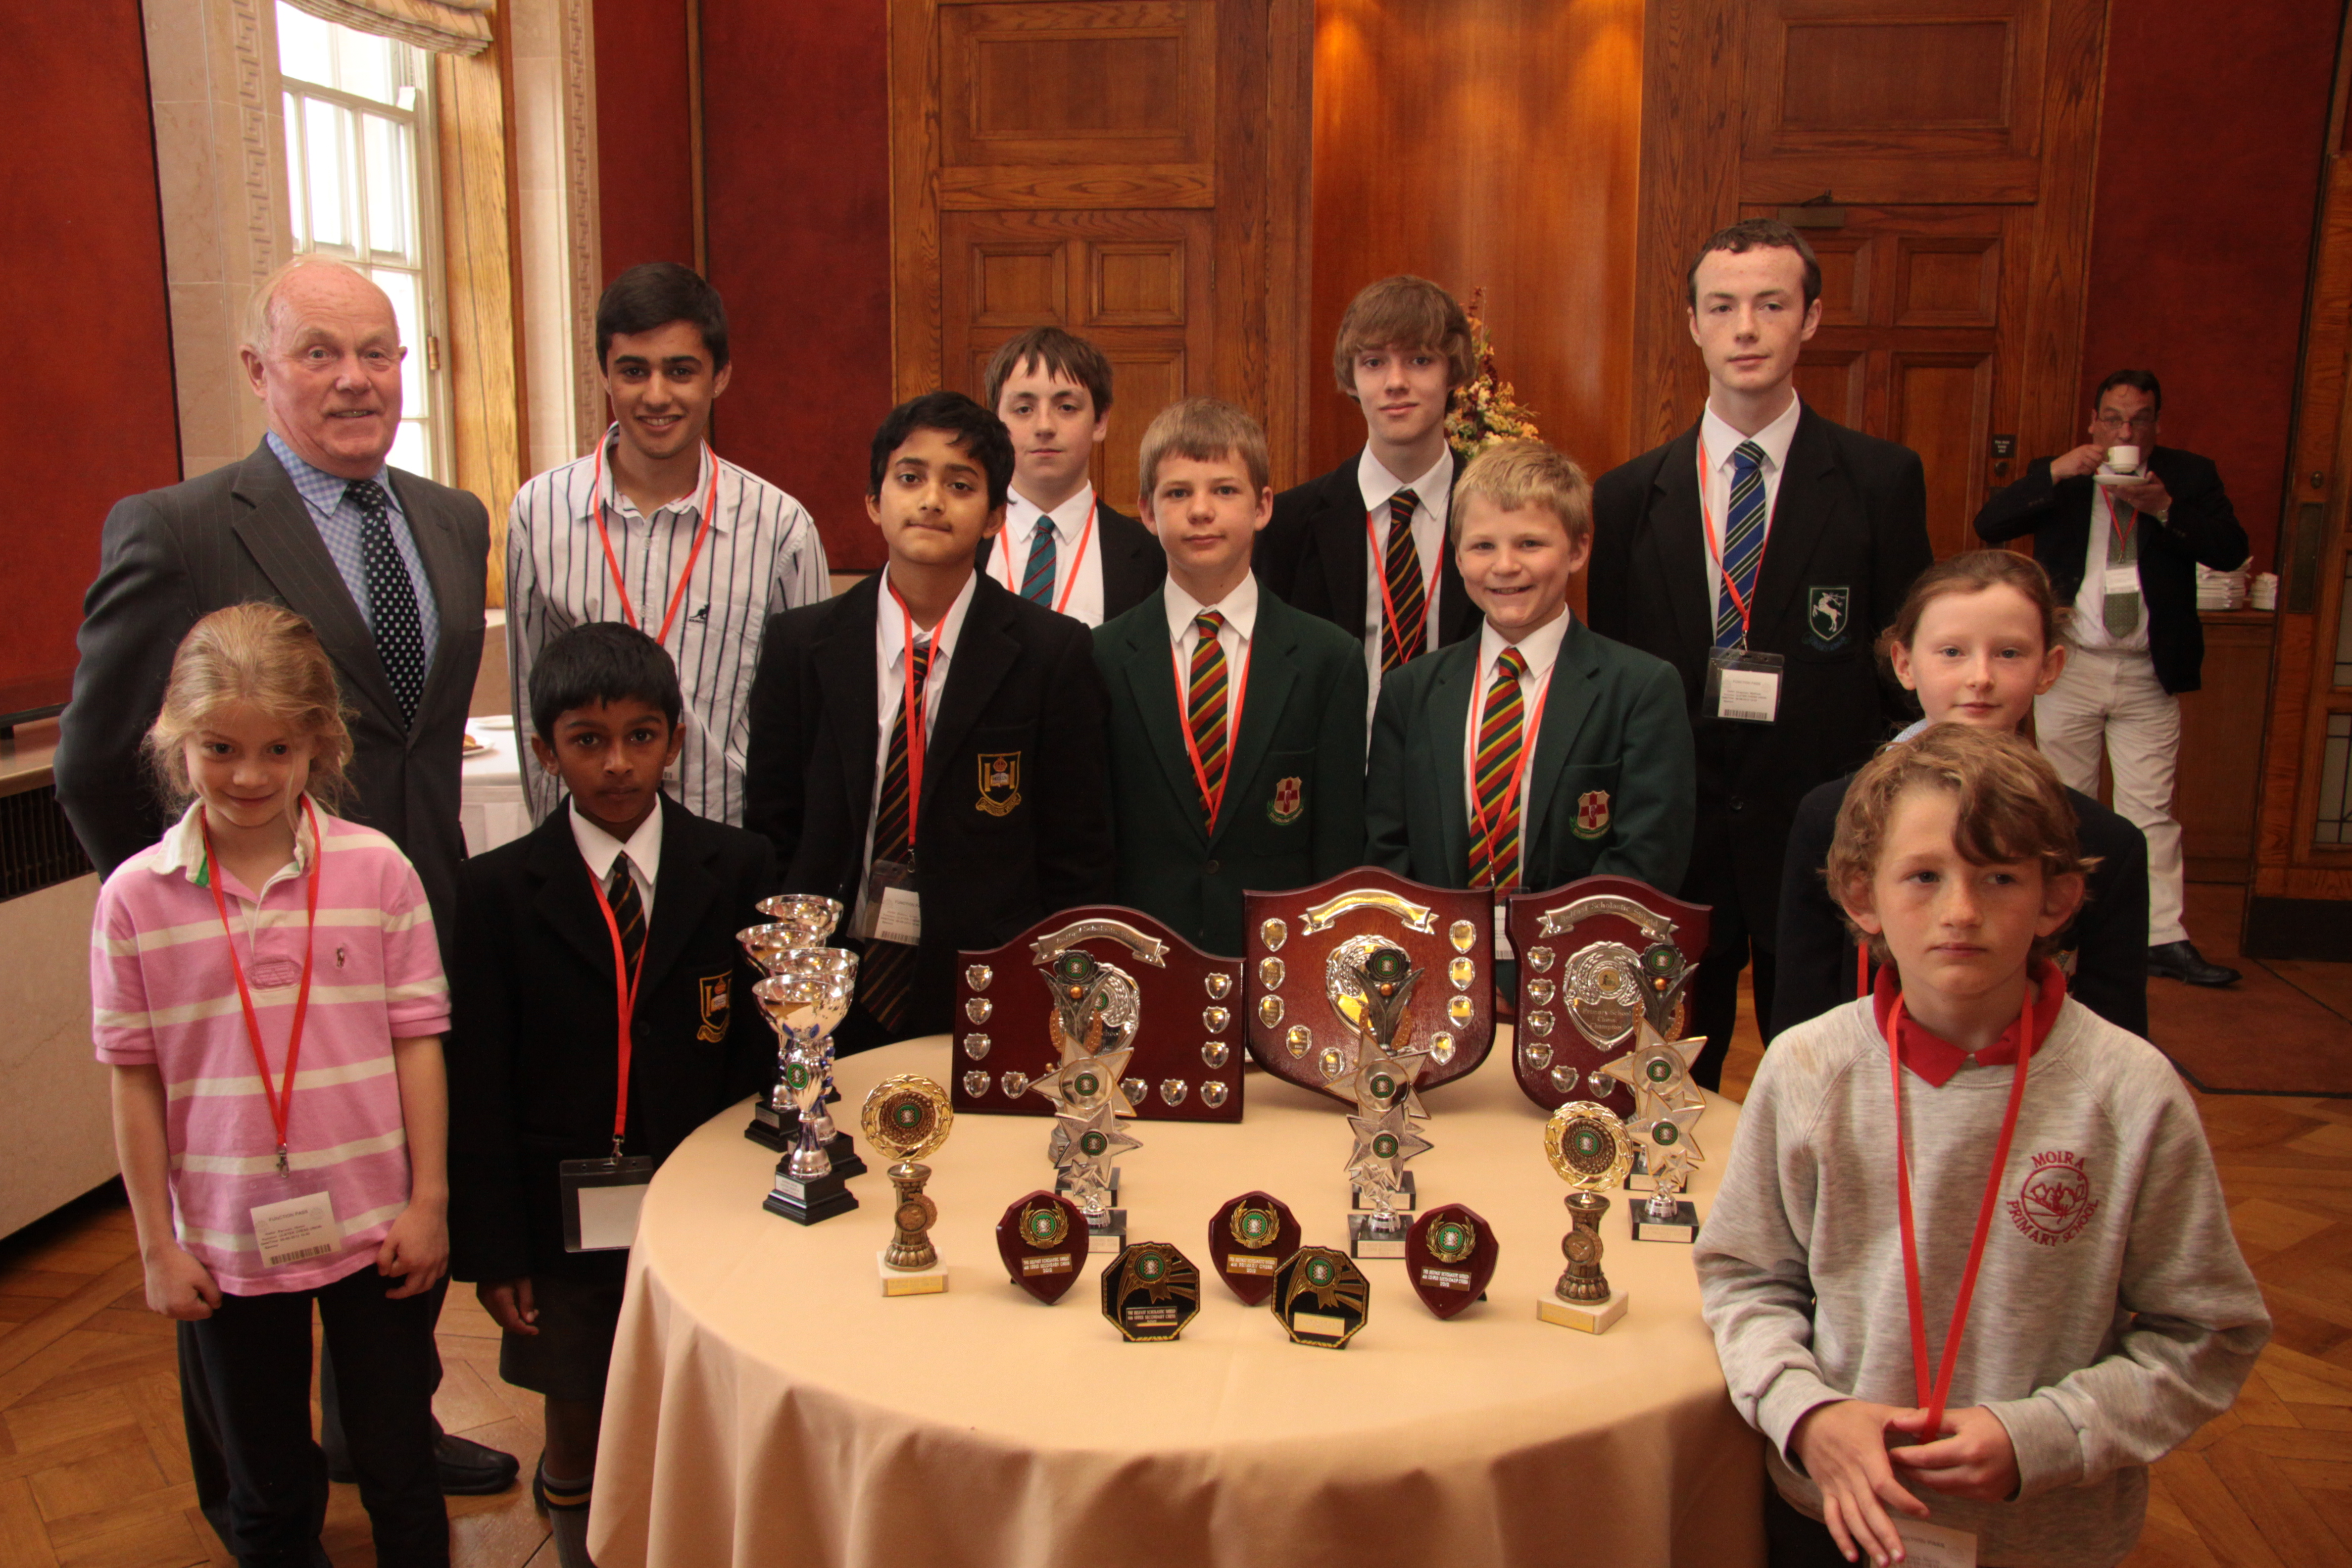 The Stormont Elite Chess Tournament 2012 and Award Ceremony